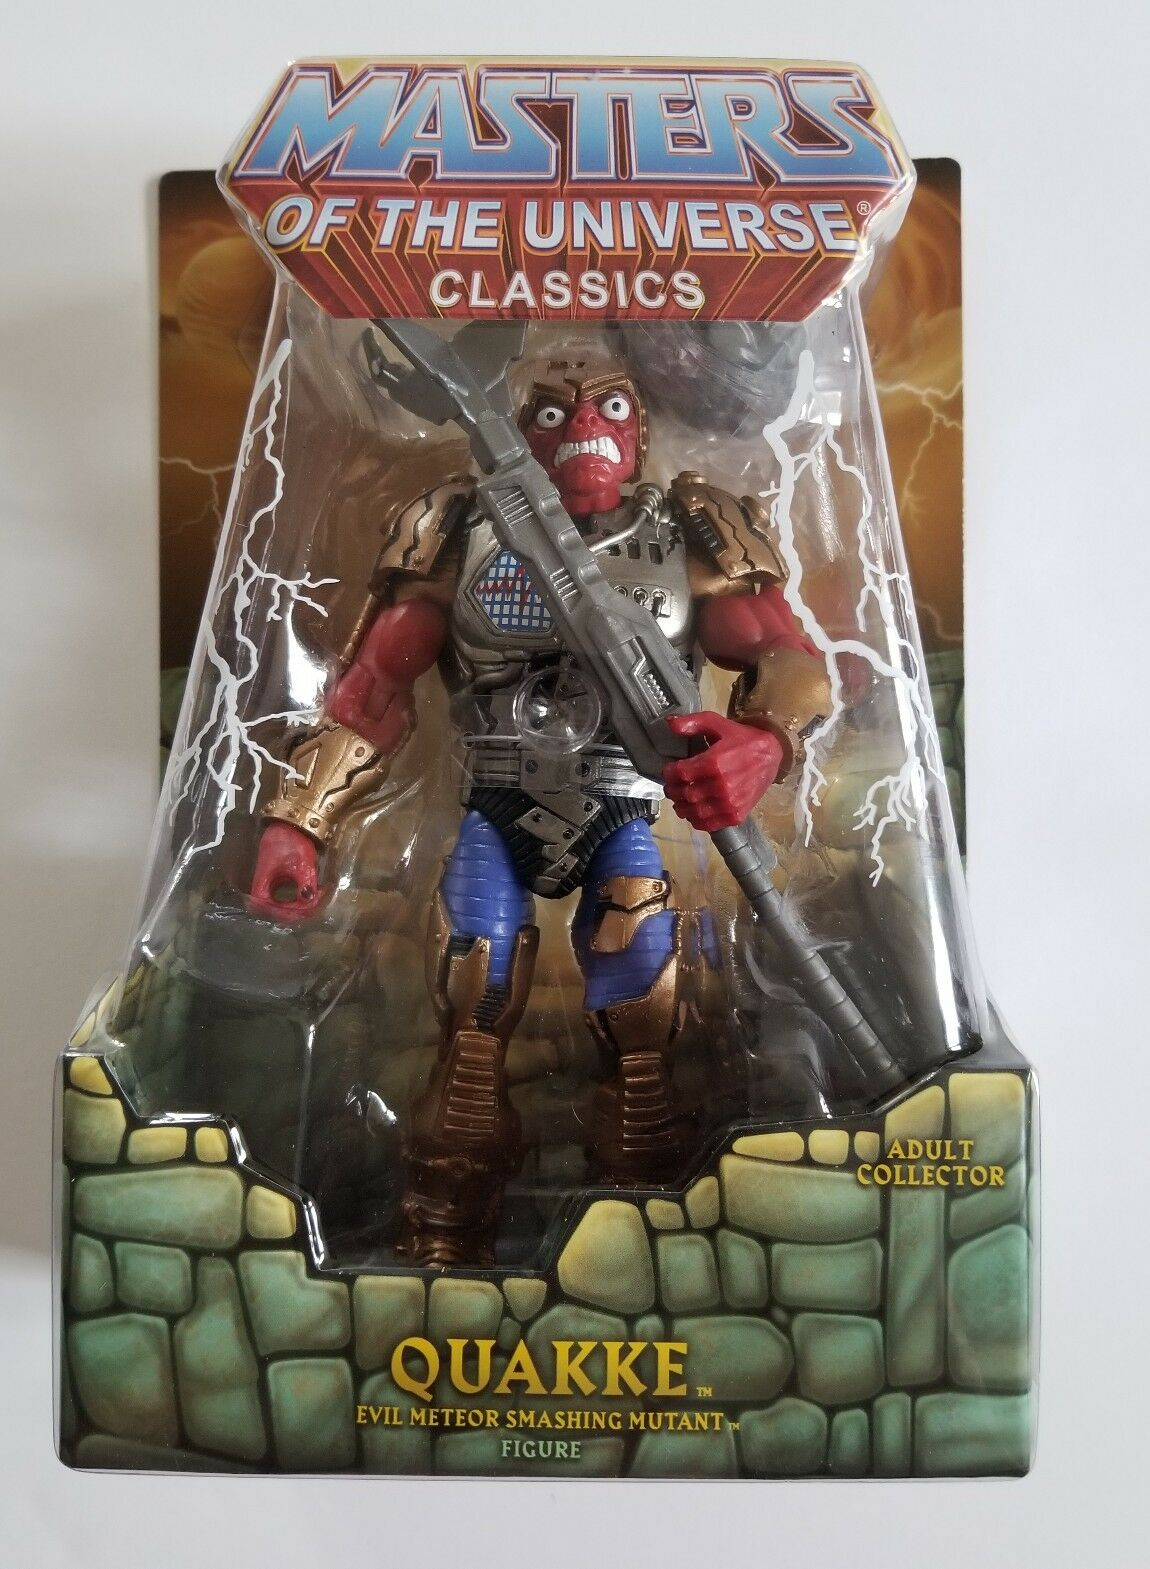 2018 Super 7  MOTU Quakke MOTUC Masters of the Universe classeeics NIB  acquista online